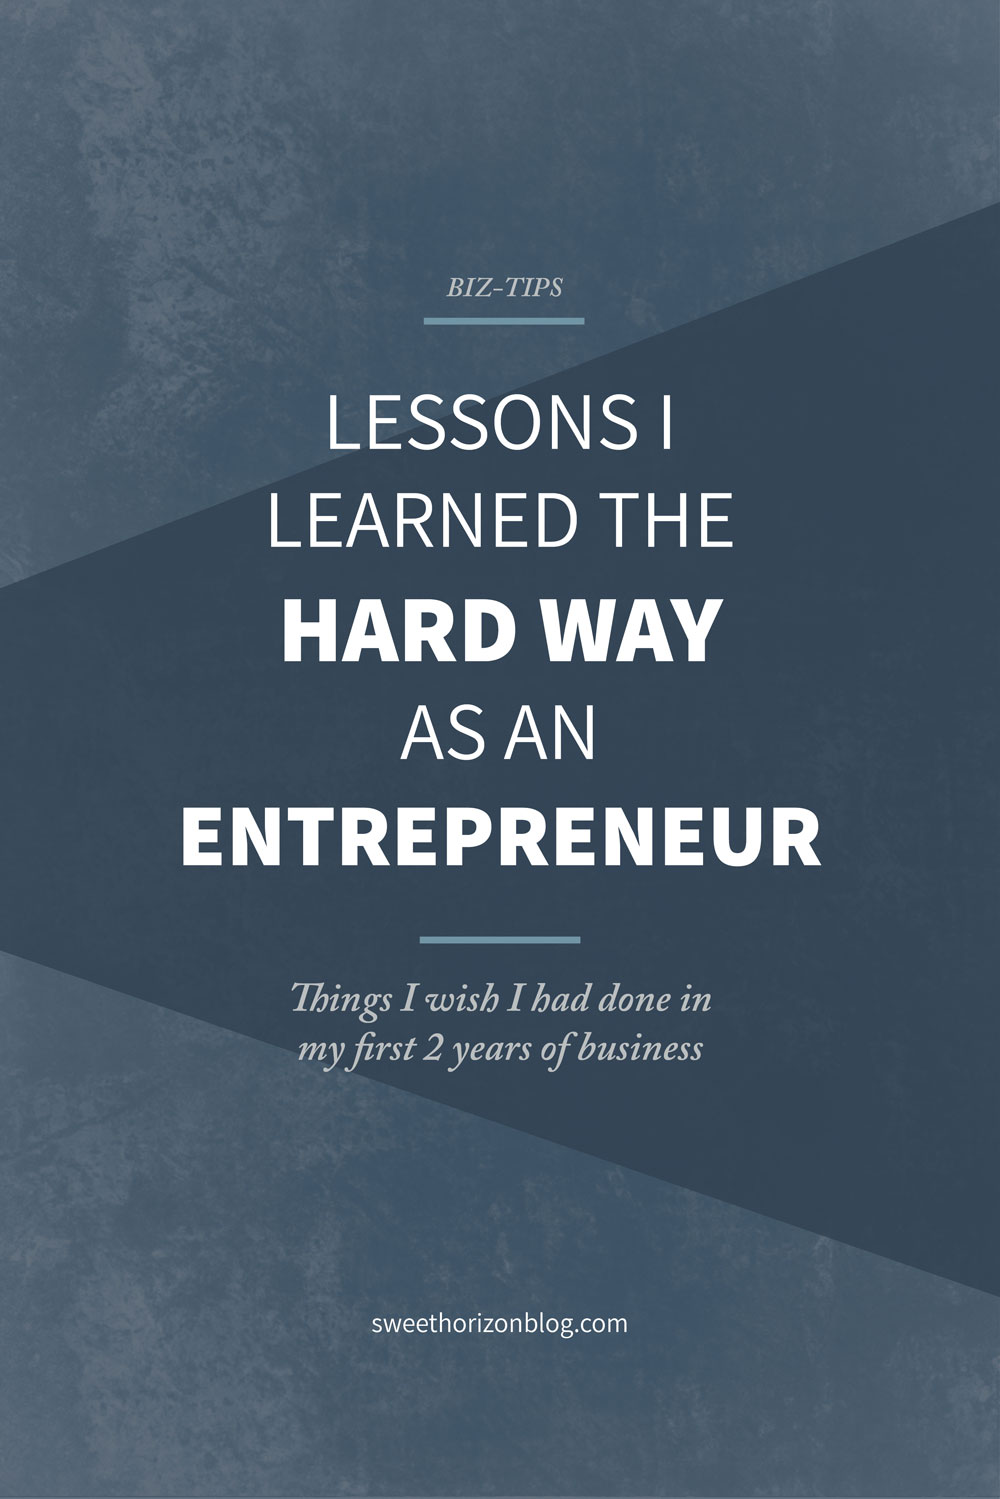 Lessons I Learned the Hard Way During 2 Years as an Entrepreneur from www.sweethorizonblog.com